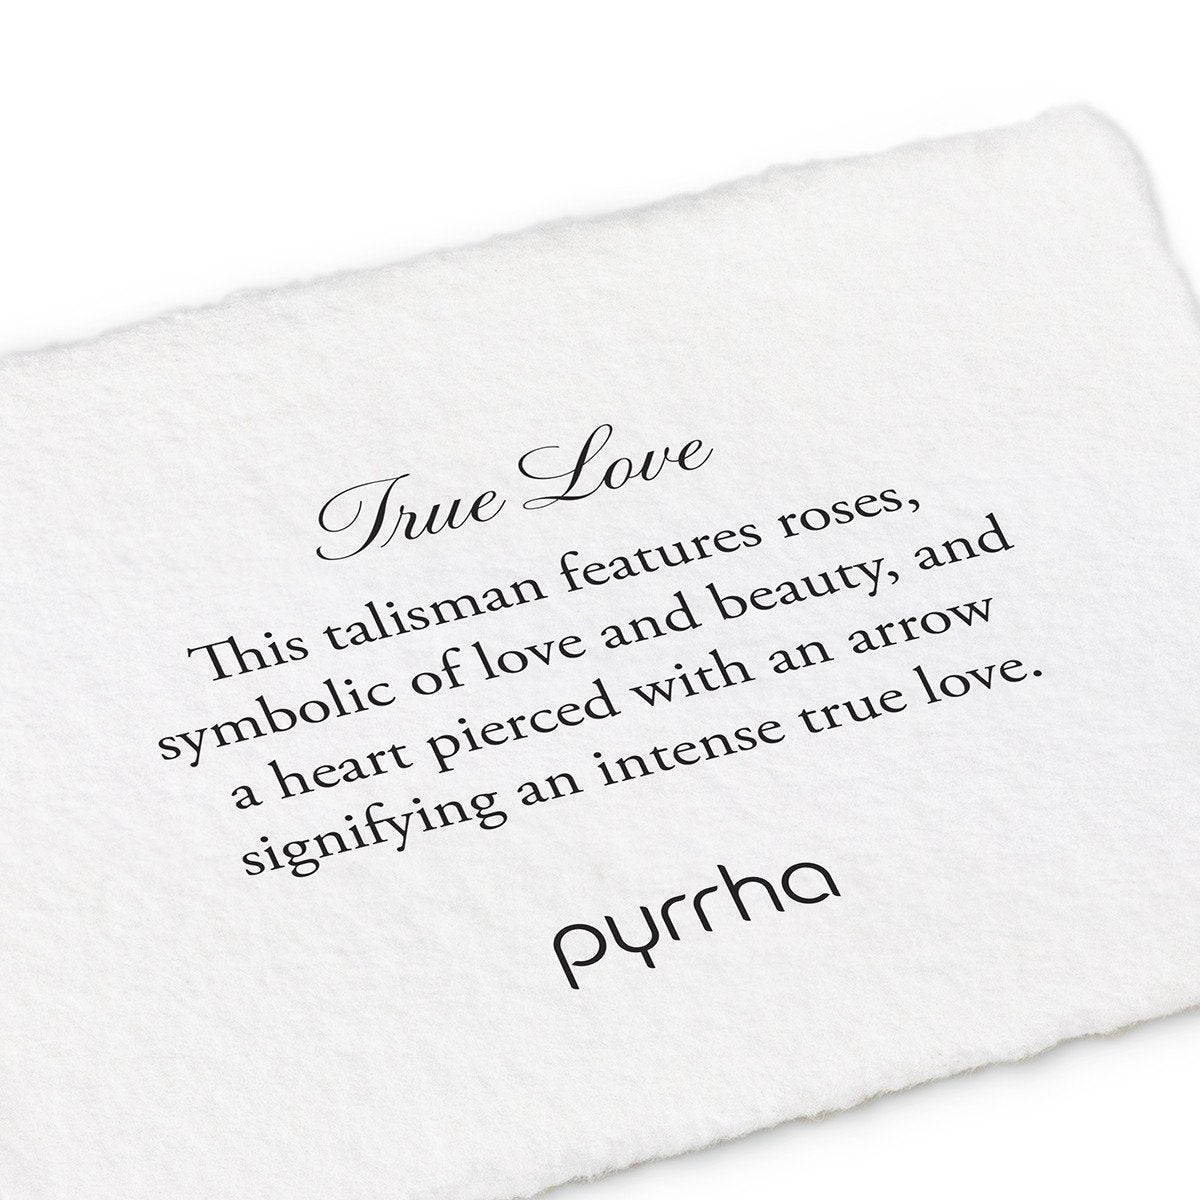 PYRRHA - True Love Talisman